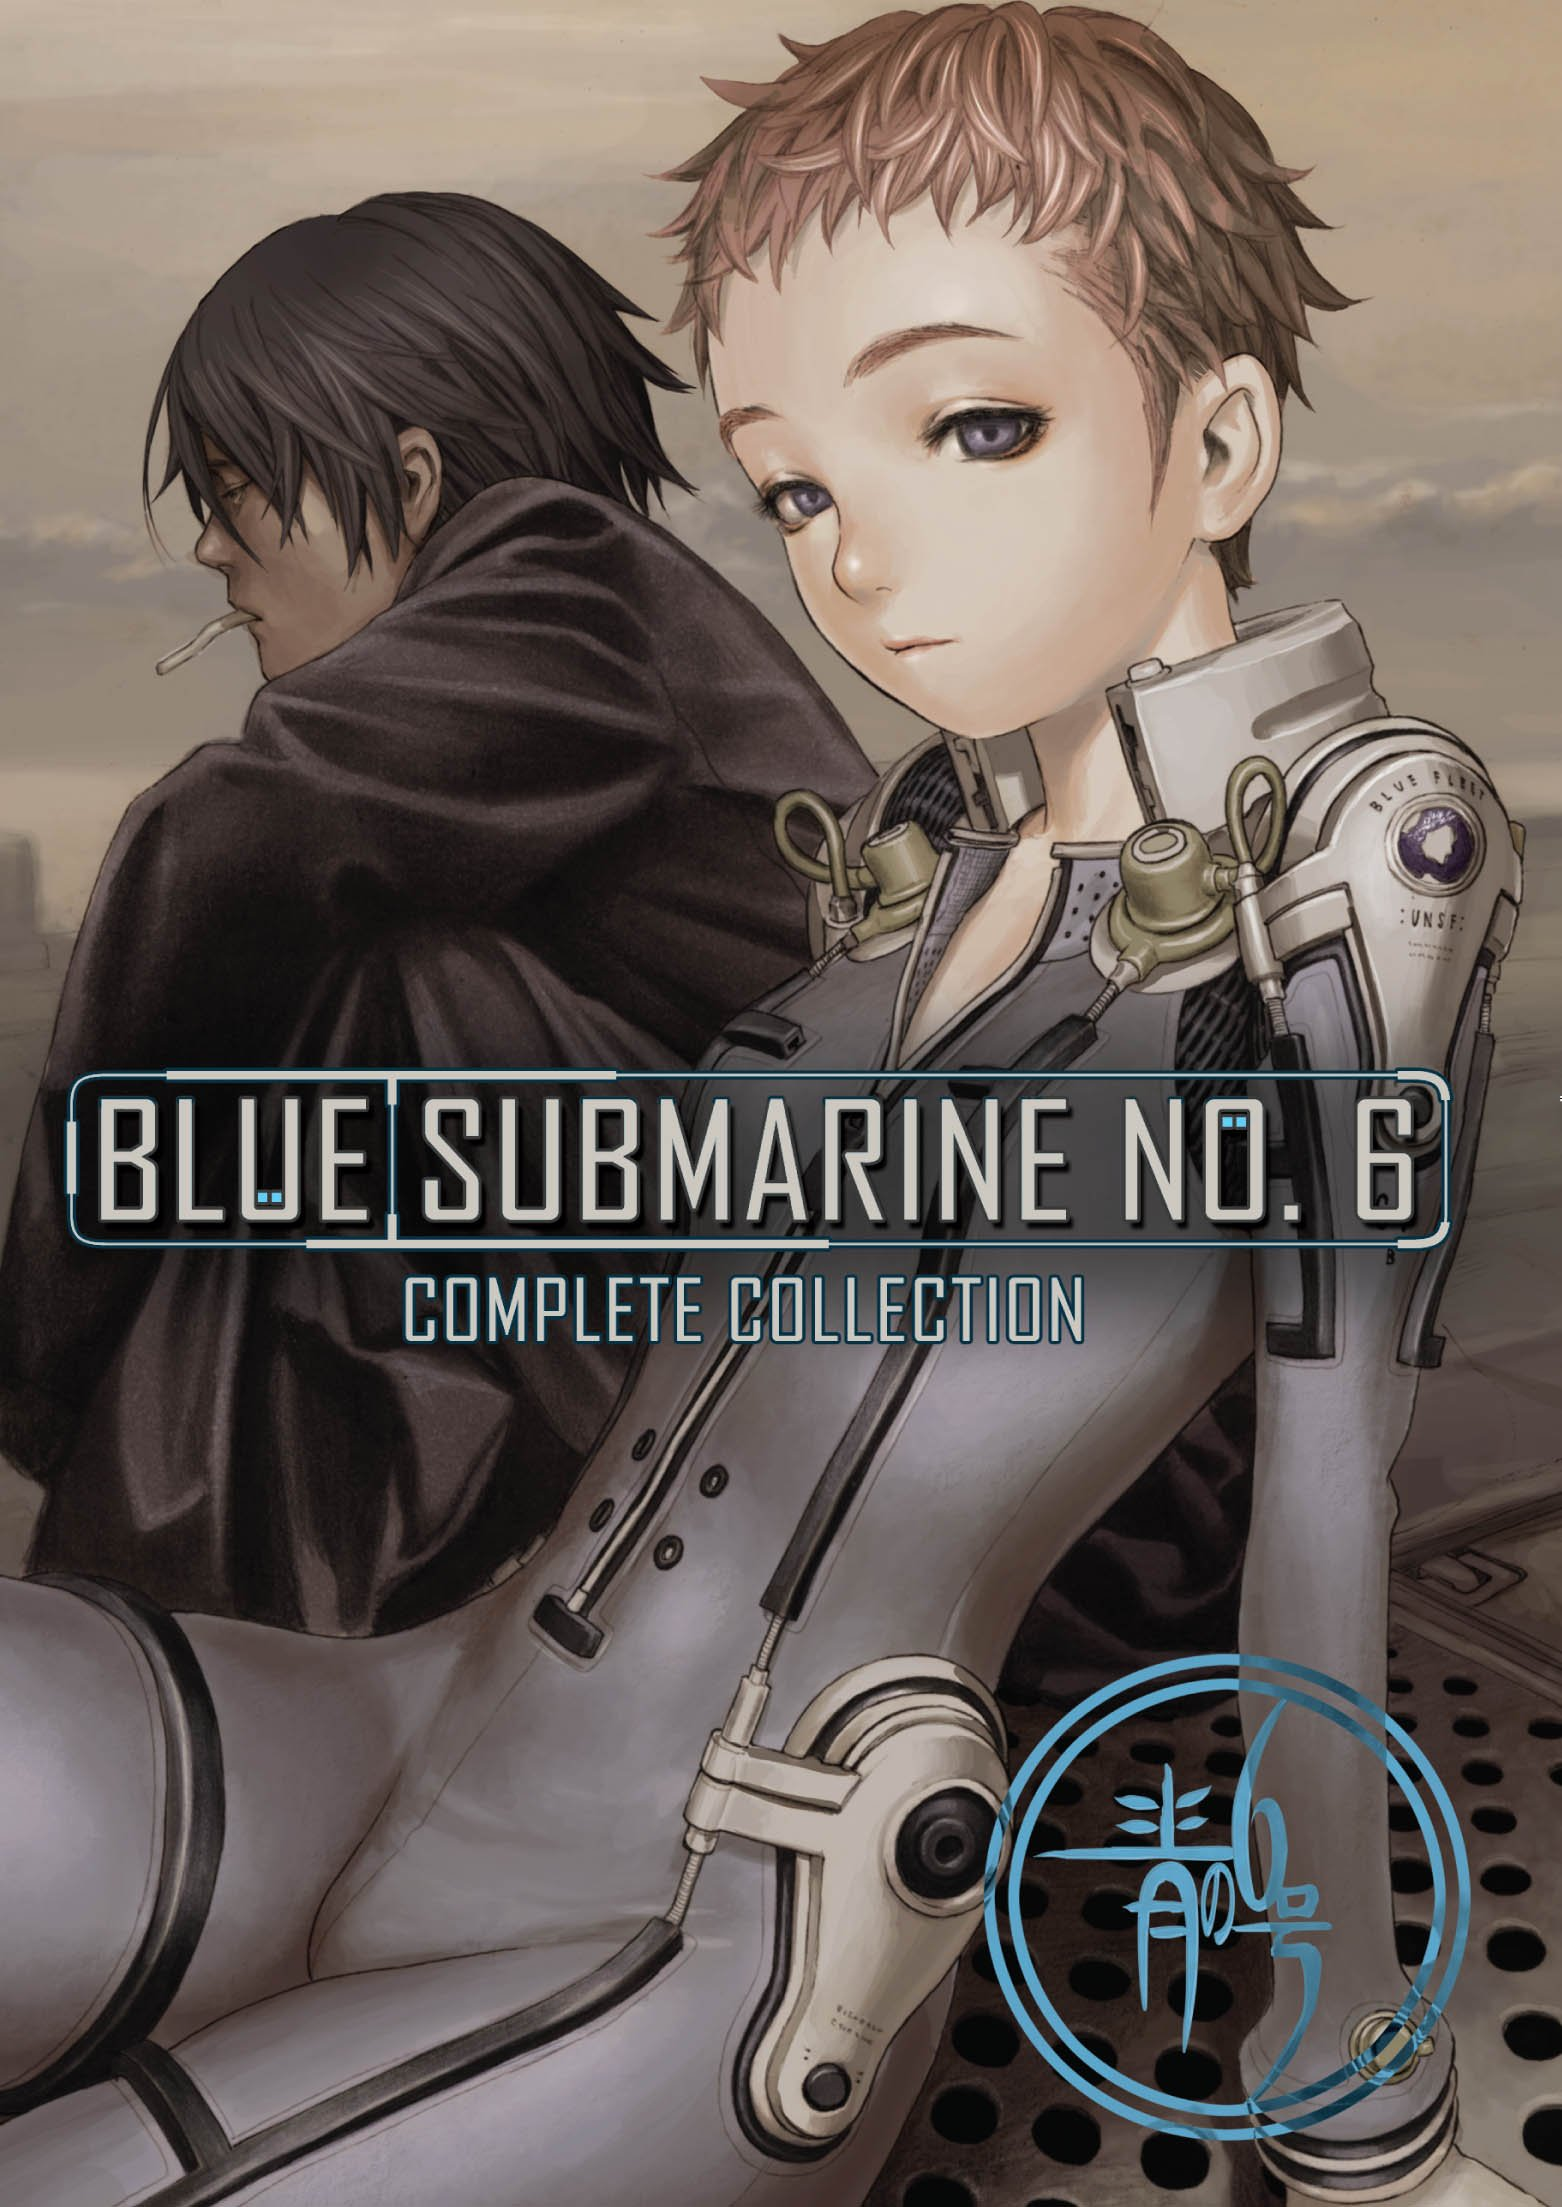 DVD : Mayumi - Blue Submarine No 6 Complete Collection (2PC)